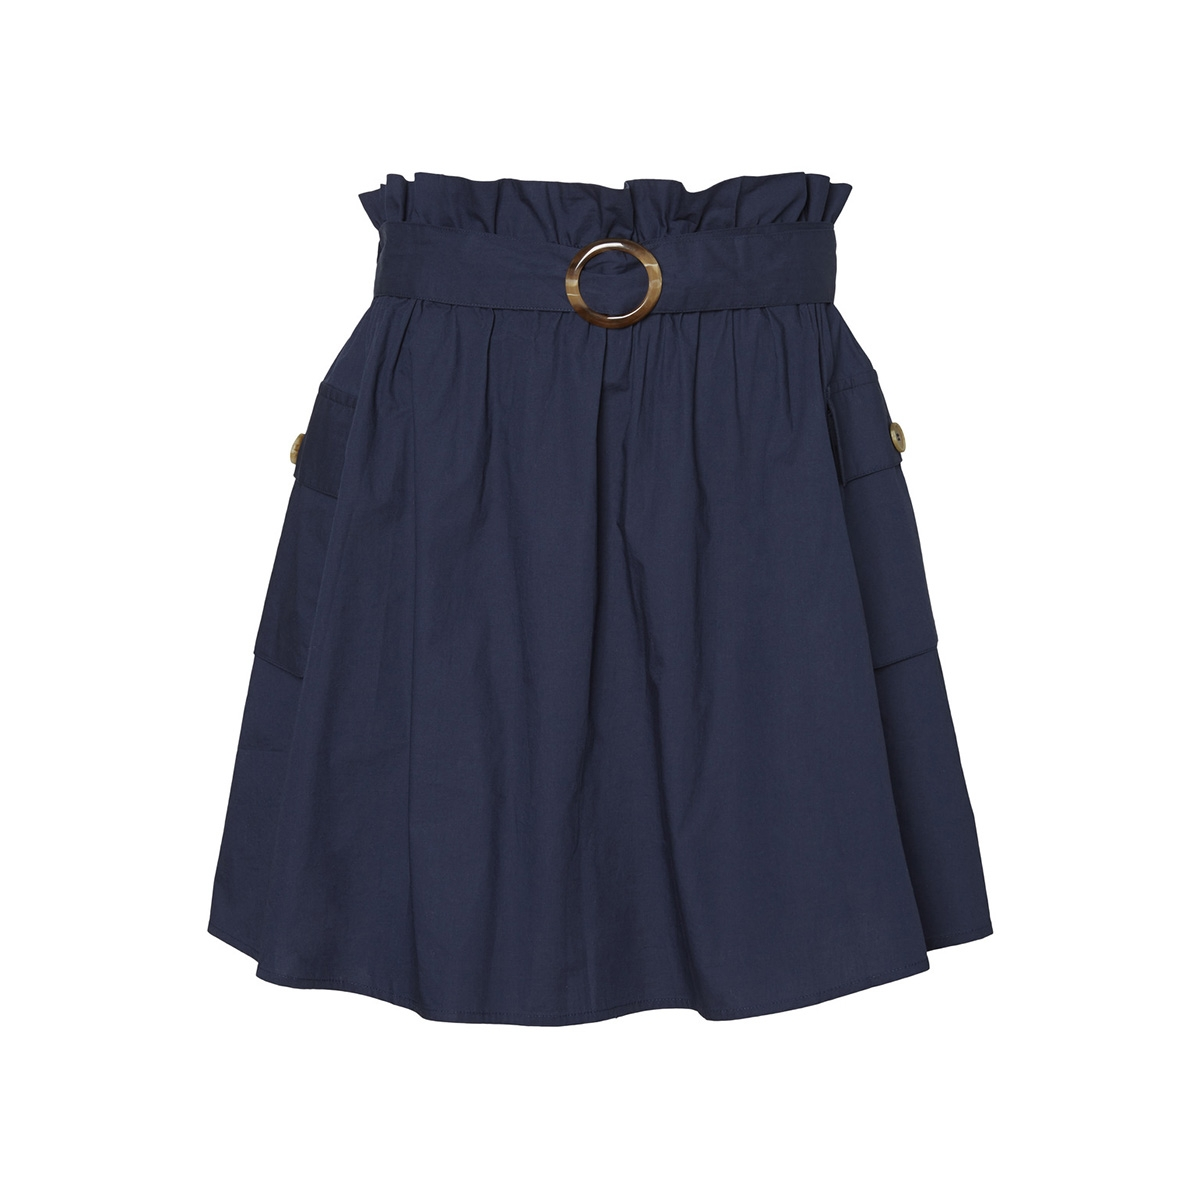 vmhalki pocket mini skirt kaa 10216209 vero moda rok navy blazer